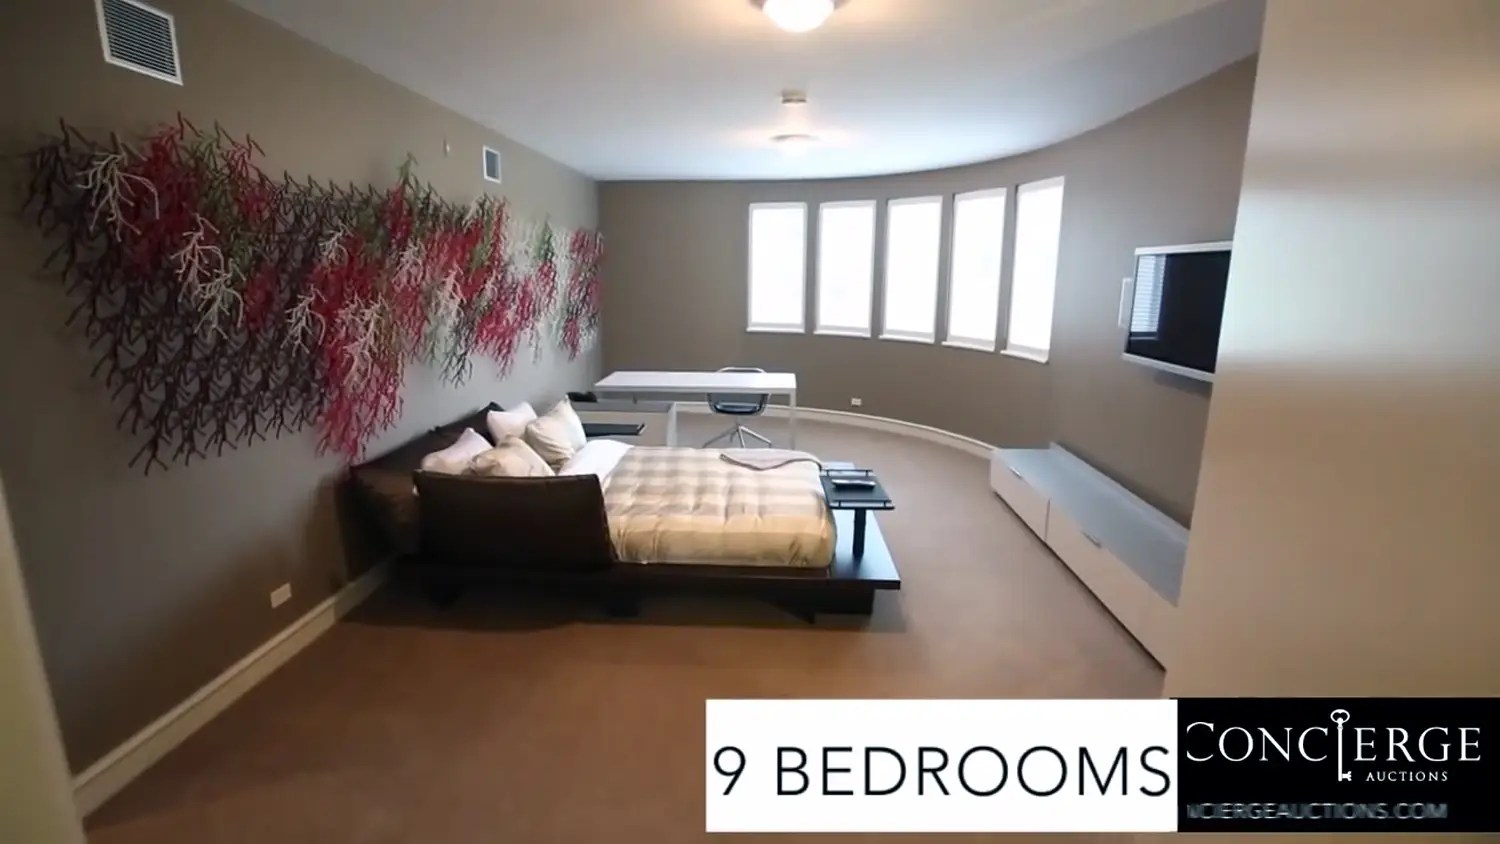 There are nine bedrooms.